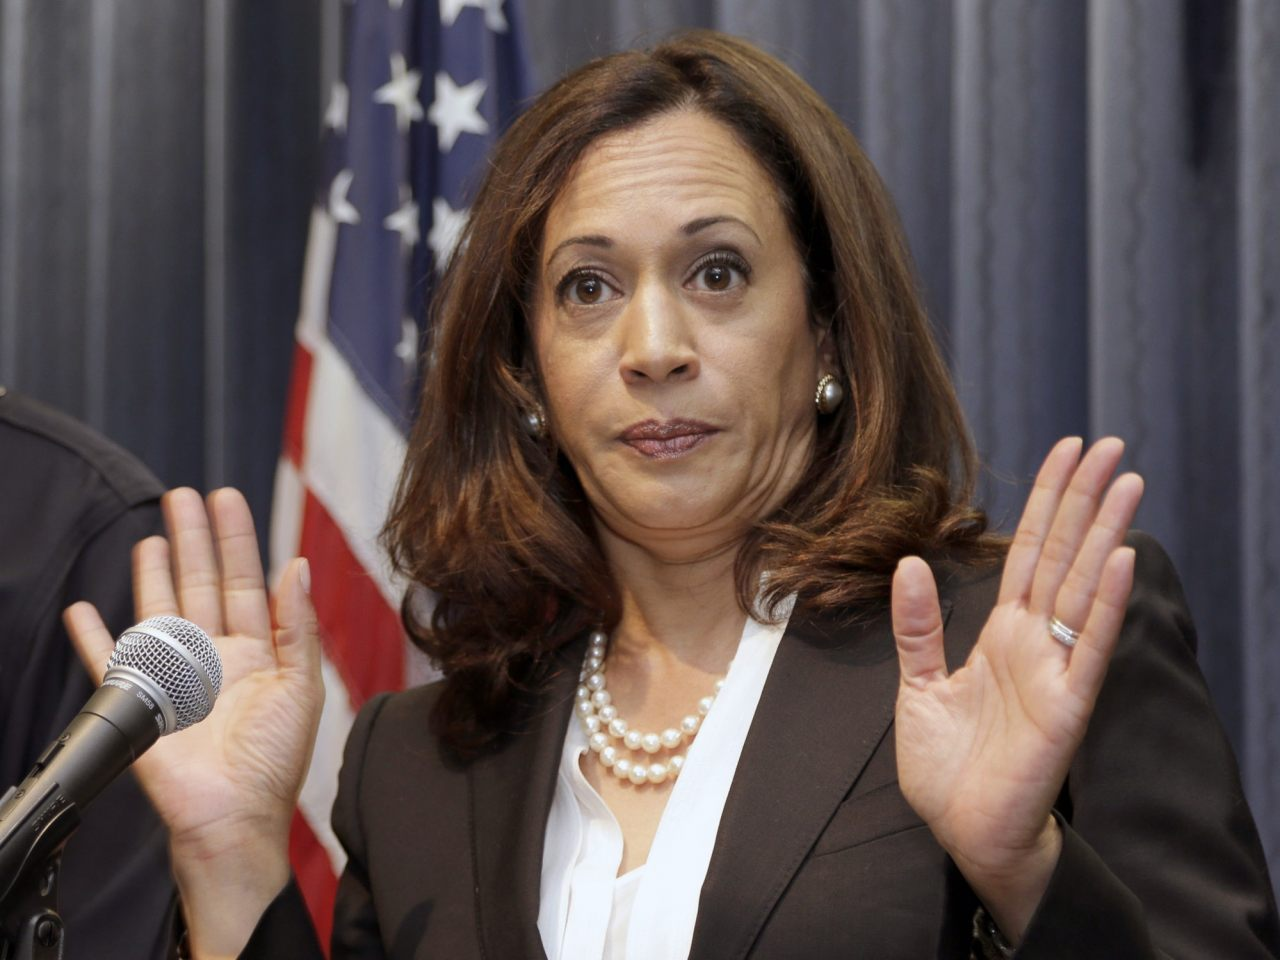 Kamala Harris Cleared, but Campaign Woes Mount - Breitbart